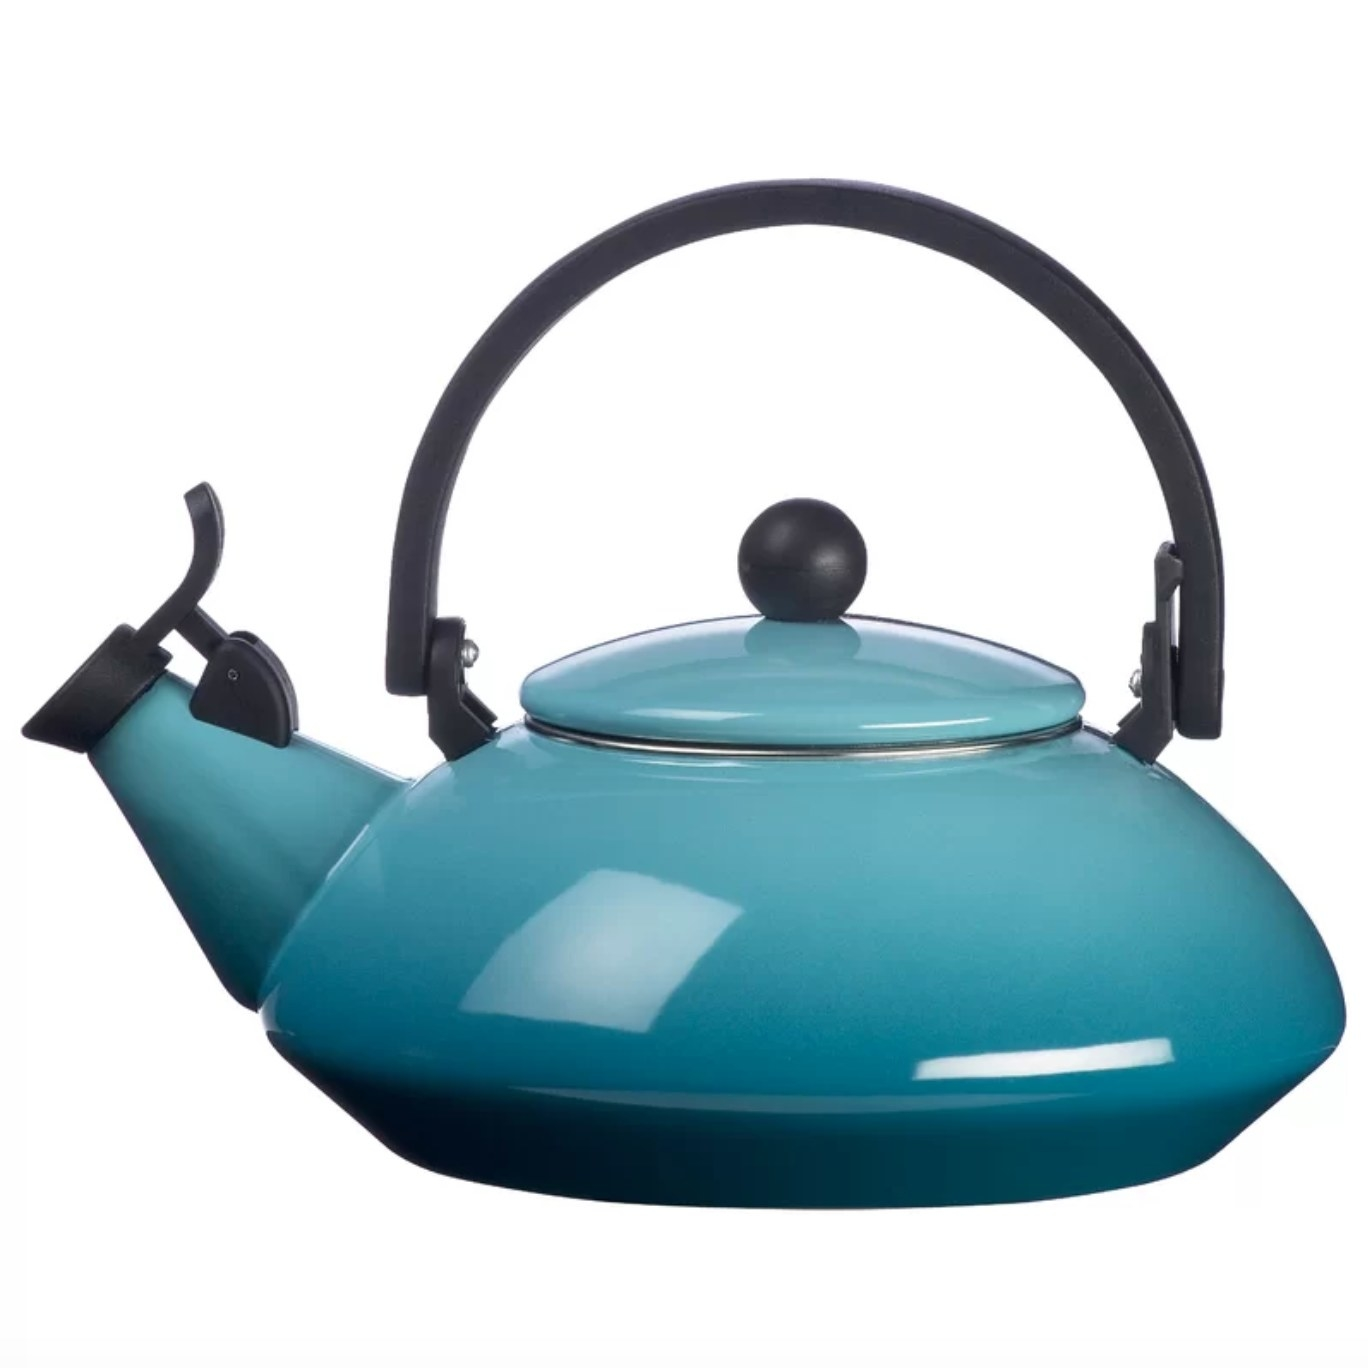 The kettle in caribbean blue